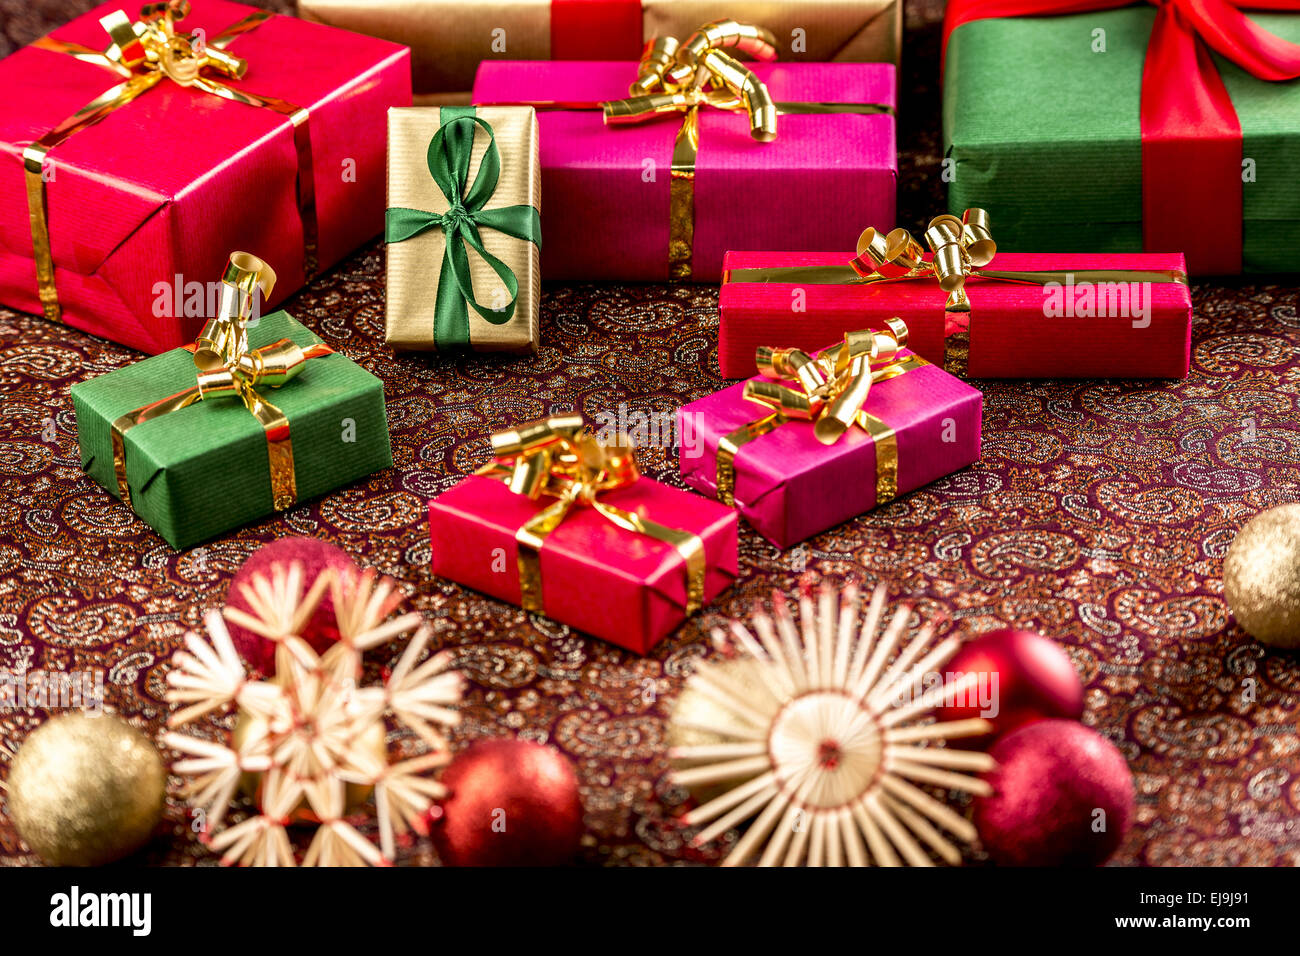 Christmas Gifts on Richly Textured Cloth - Stock Image